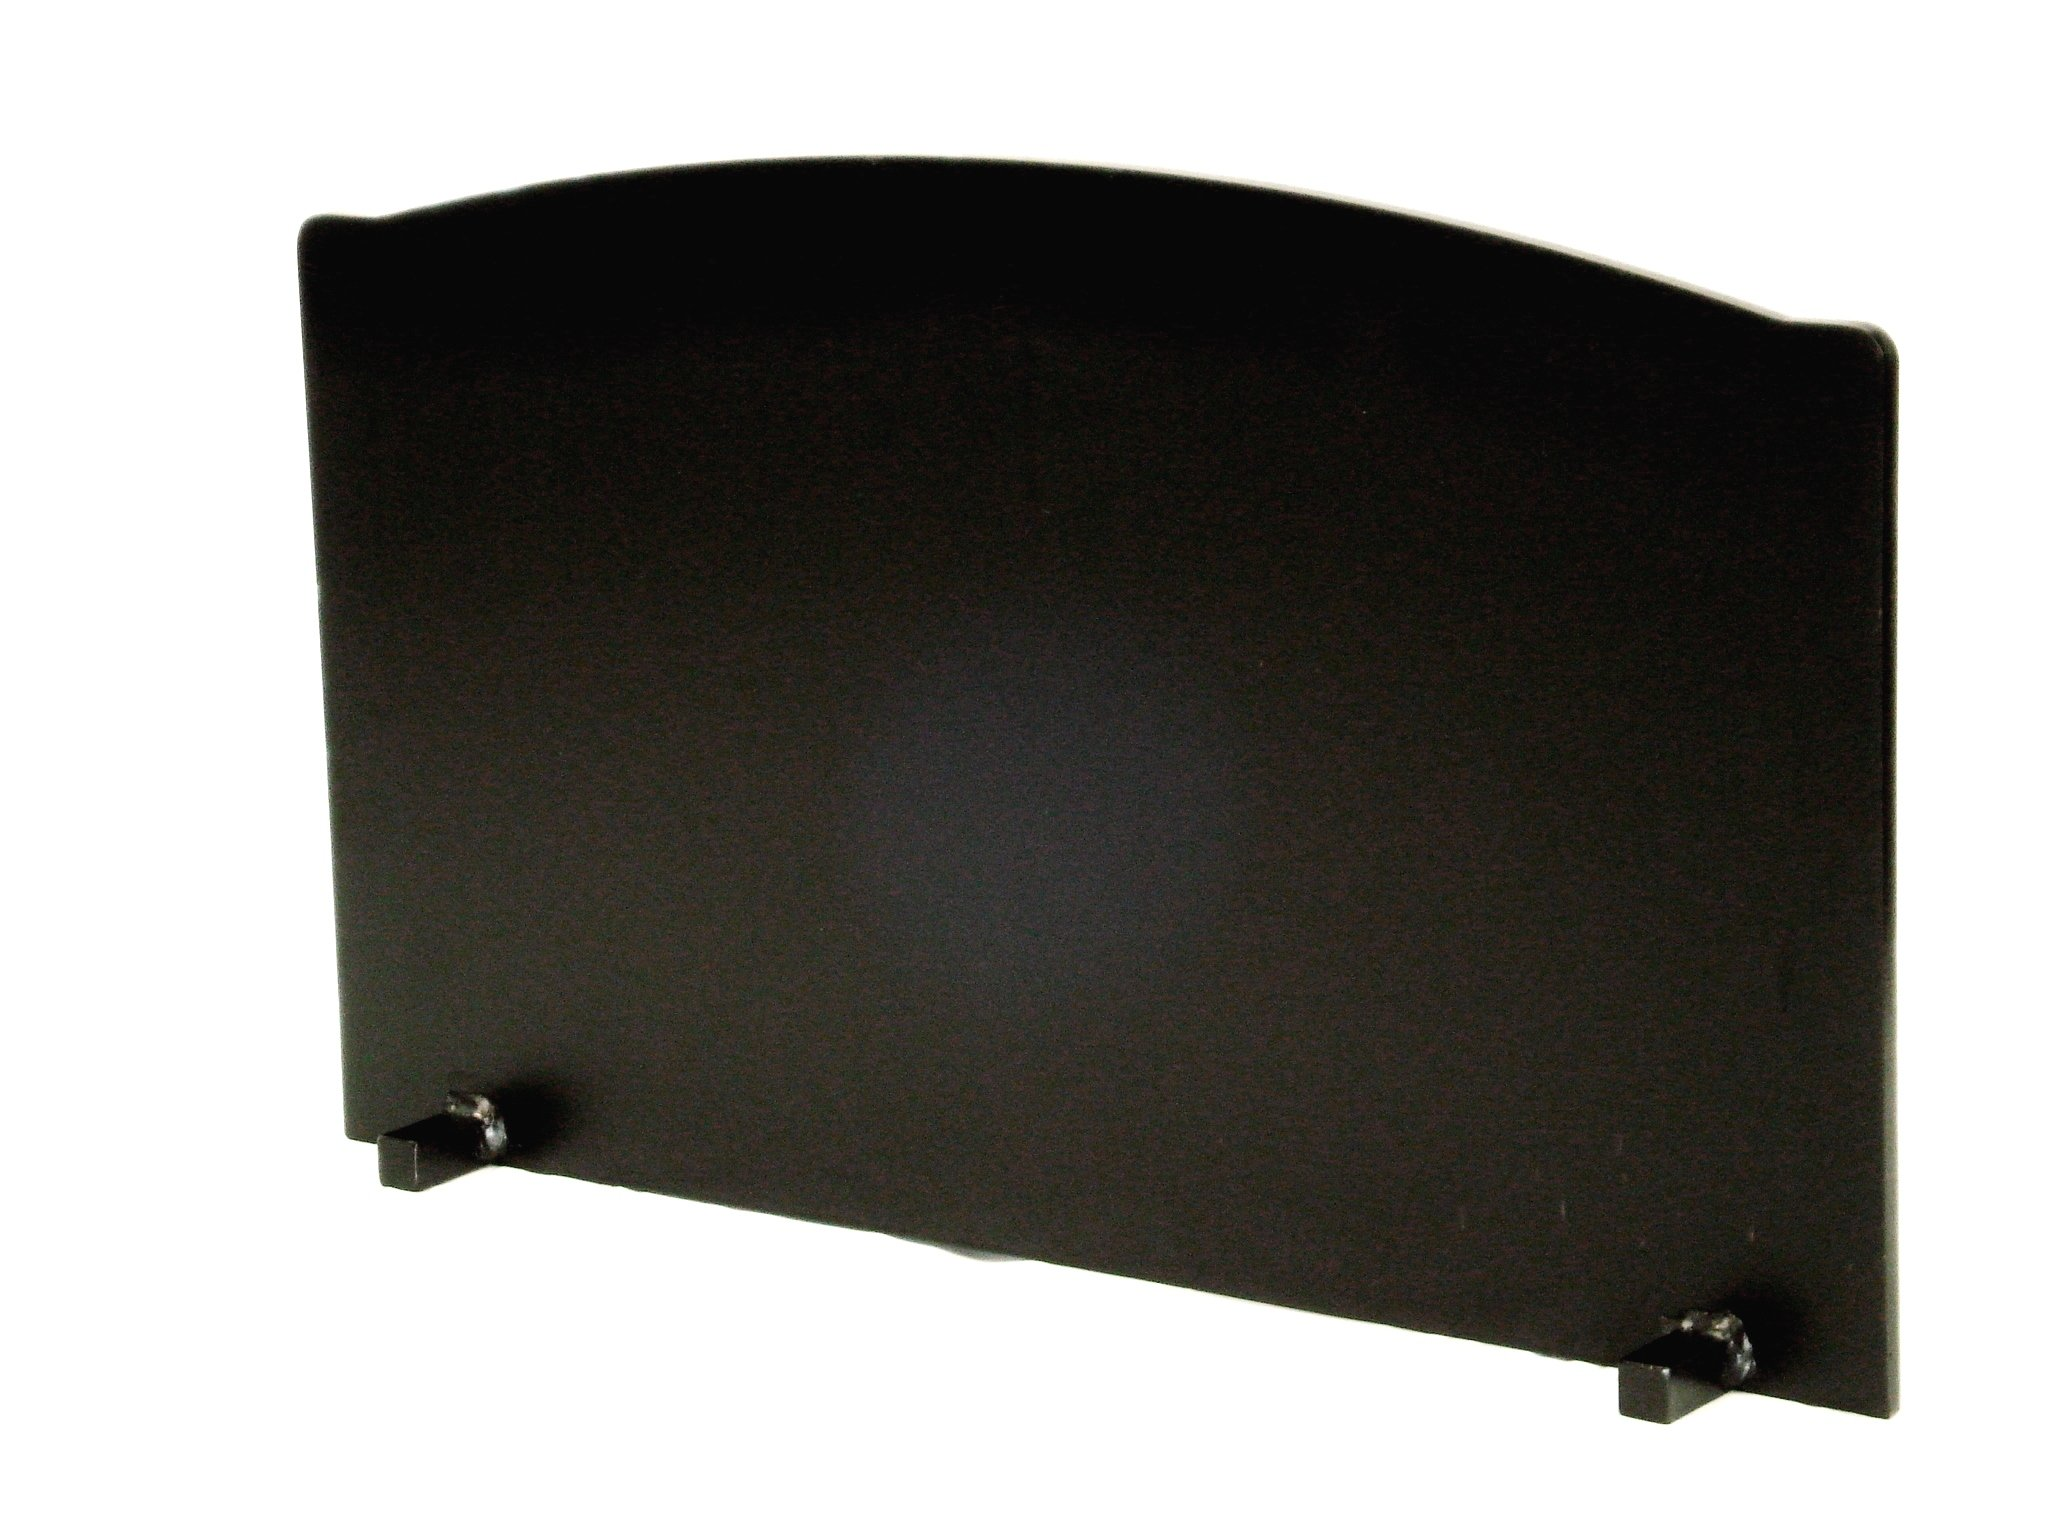 Grate Wall of Fire Model RF-6 Reflective Fireback 26'' Wide, 15 1/2'' Tall. by Grate Wall of Fire